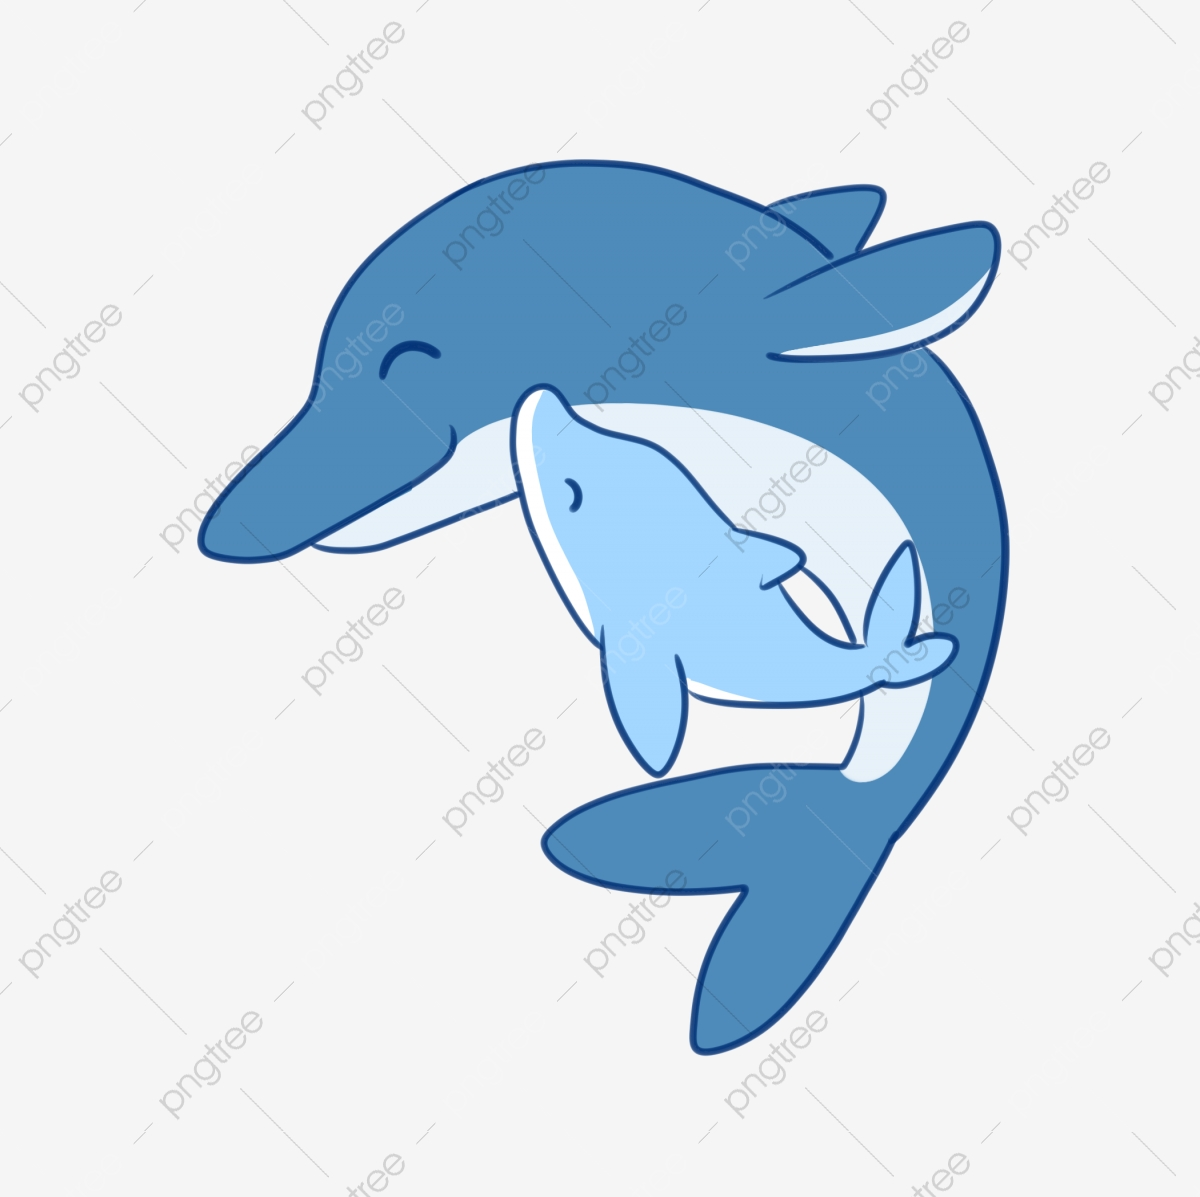 Animal Mother And Child Combination Dolphins Dolphin Mother S Day Mother And Child Png Transparent Clipart Image And Psd File For Free Download